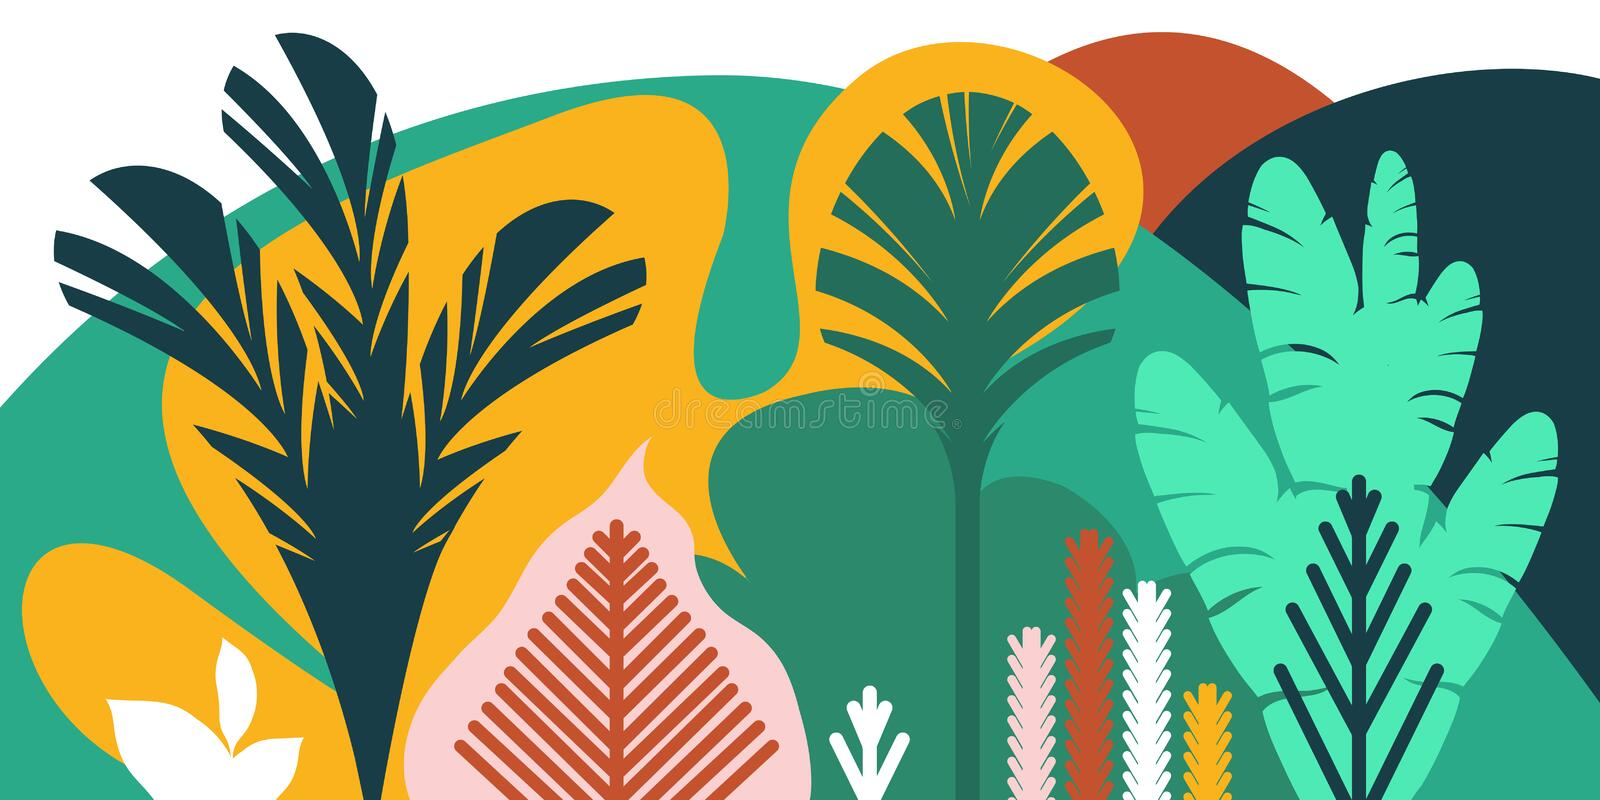 Trees are broad-leaved tropical, ferns. Flat style. Preservation of the environment, forests. Park, outdoor. vector illustration